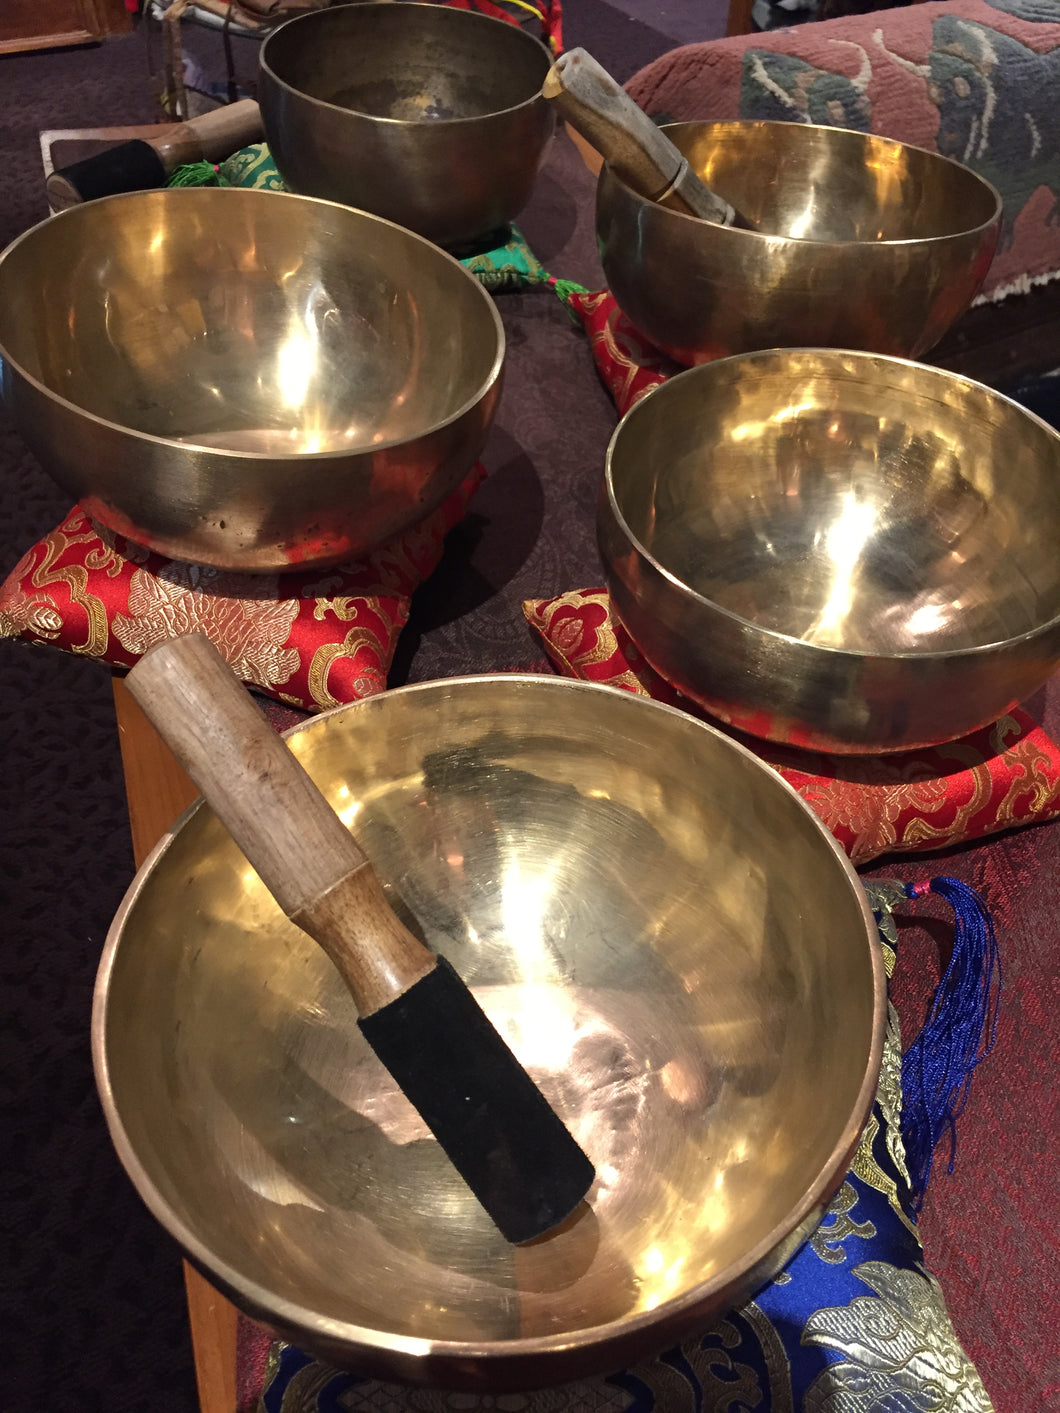 *Seven Metal, Hand Made Tibetan Singing Bowl - IN STOCK, call for information 612 926 8723